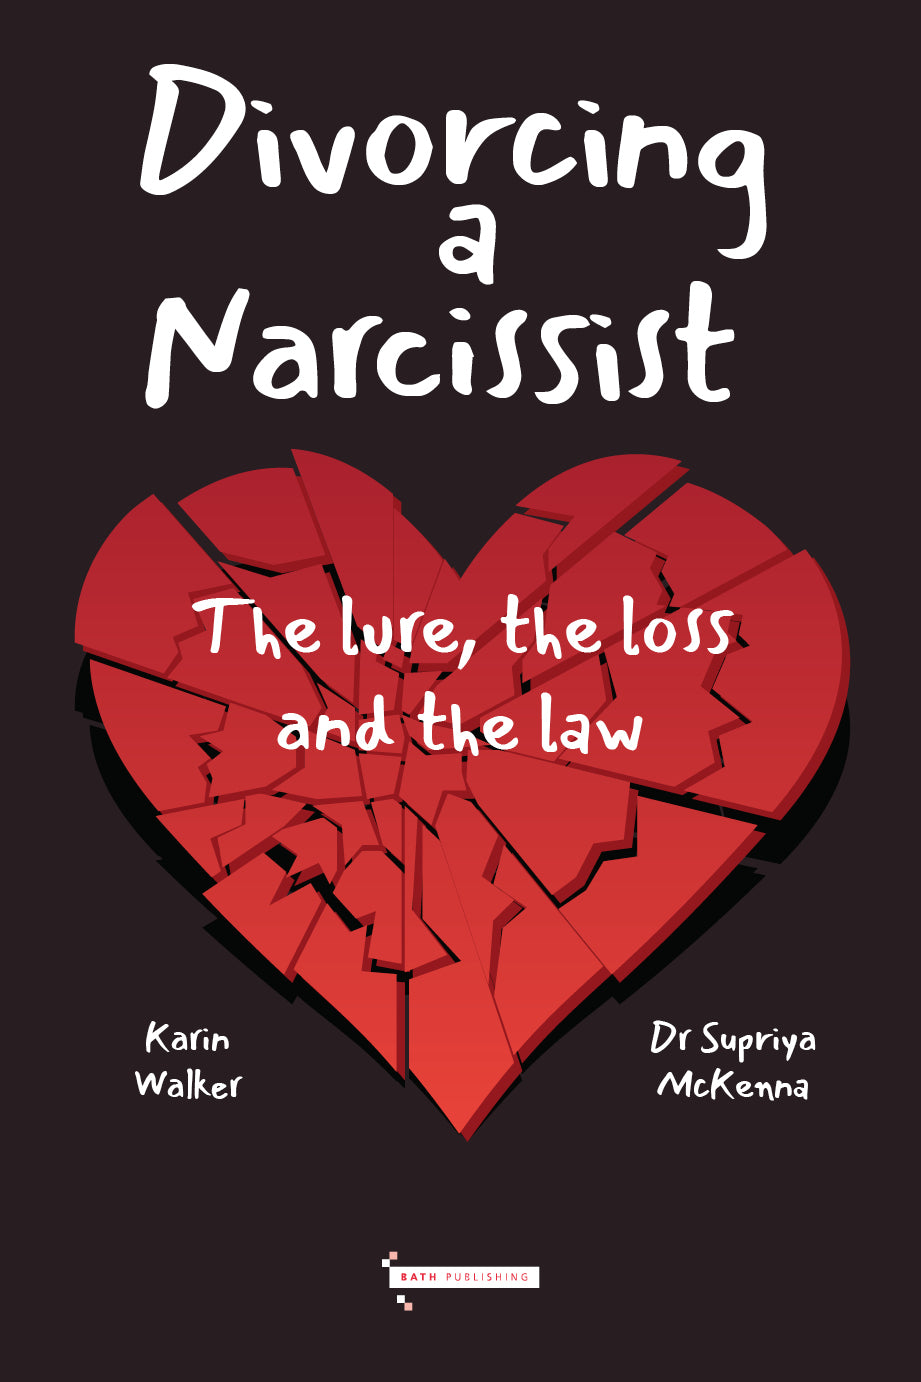 Divorcing a Narcissist: The lure, the loss and the law